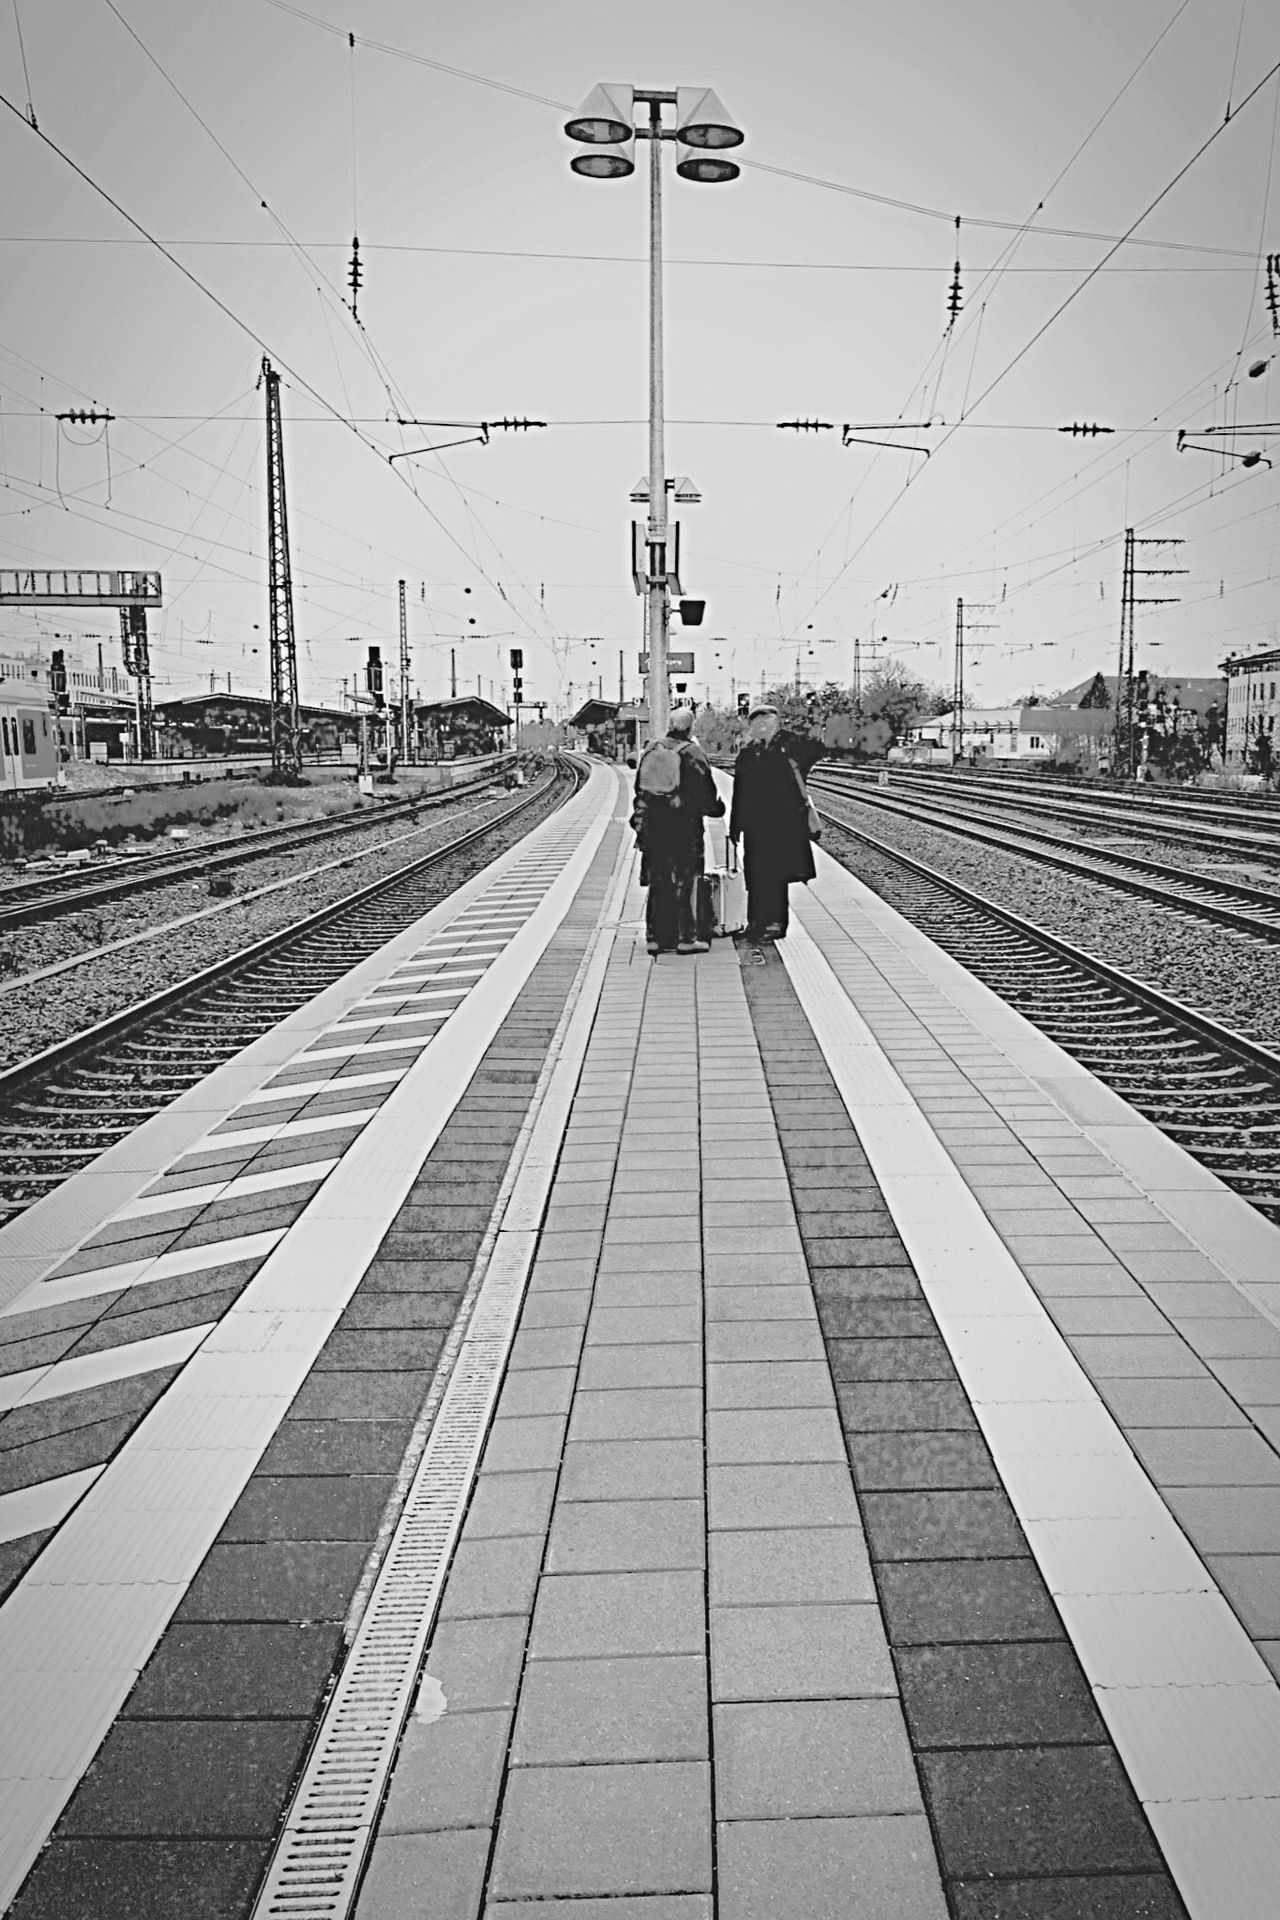 Pasing Bavaria Blackandwhite Blackandwhite Photography Black & White Built Structure Architecture Urban Munich München München,Germany München-Pasing Tracks Station Waiting For A Train Wait Reisefieber Human Meets Technology Feel The Journey Long Goodbye